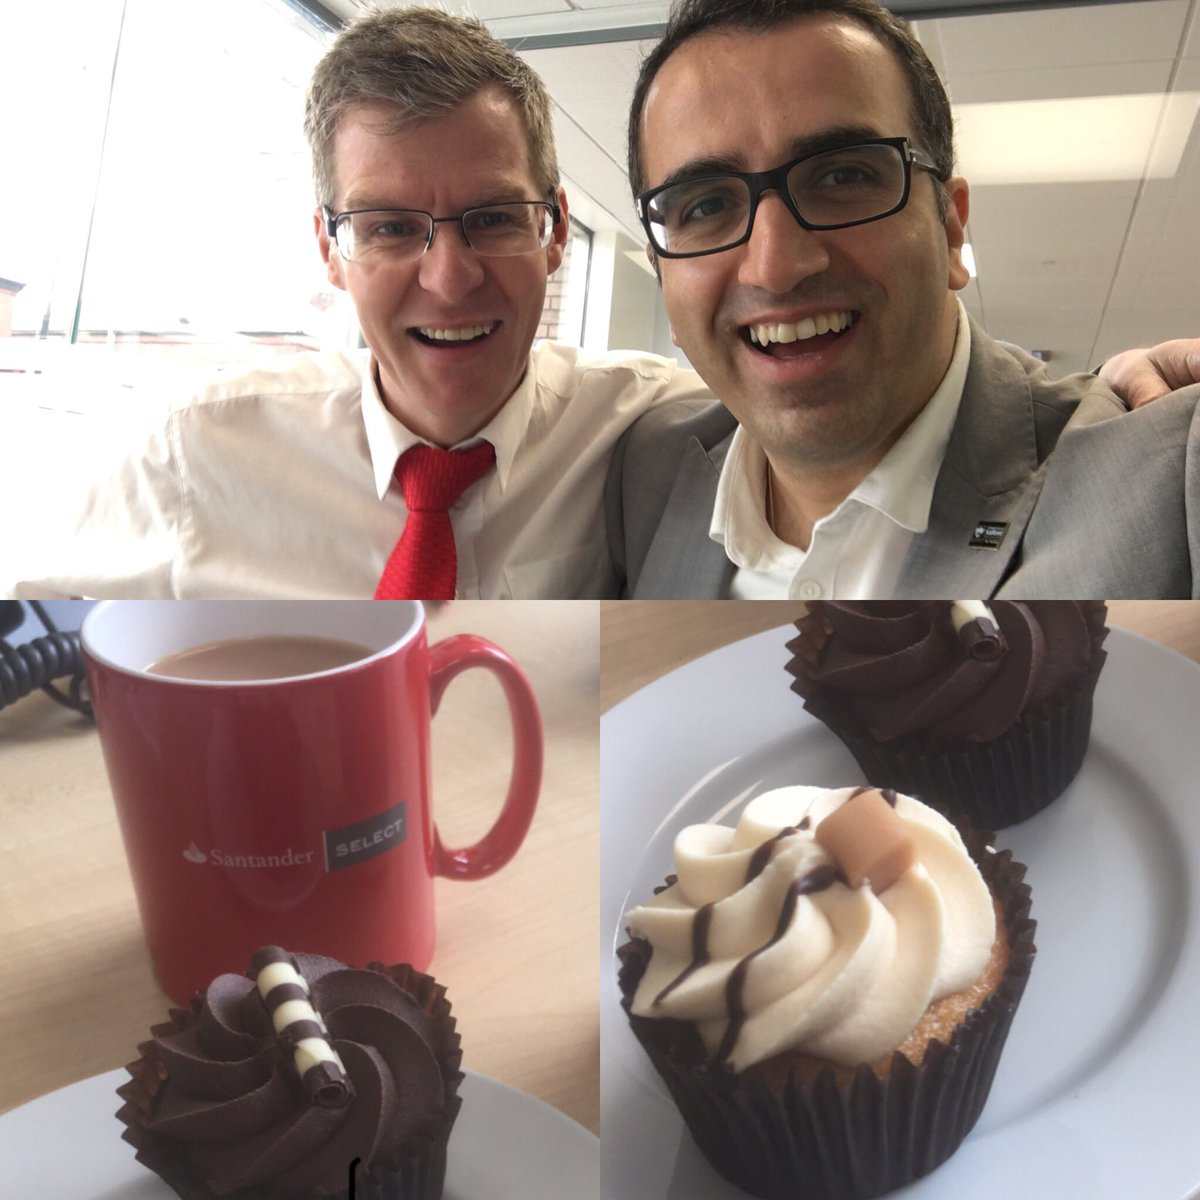 This is how we do #business meeting with our amazing #bank #manager @santanderuk @dunc1977 ! Tea and delicious cake with a great friend <br>http://pic.twitter.com/wk5m2TvUAy